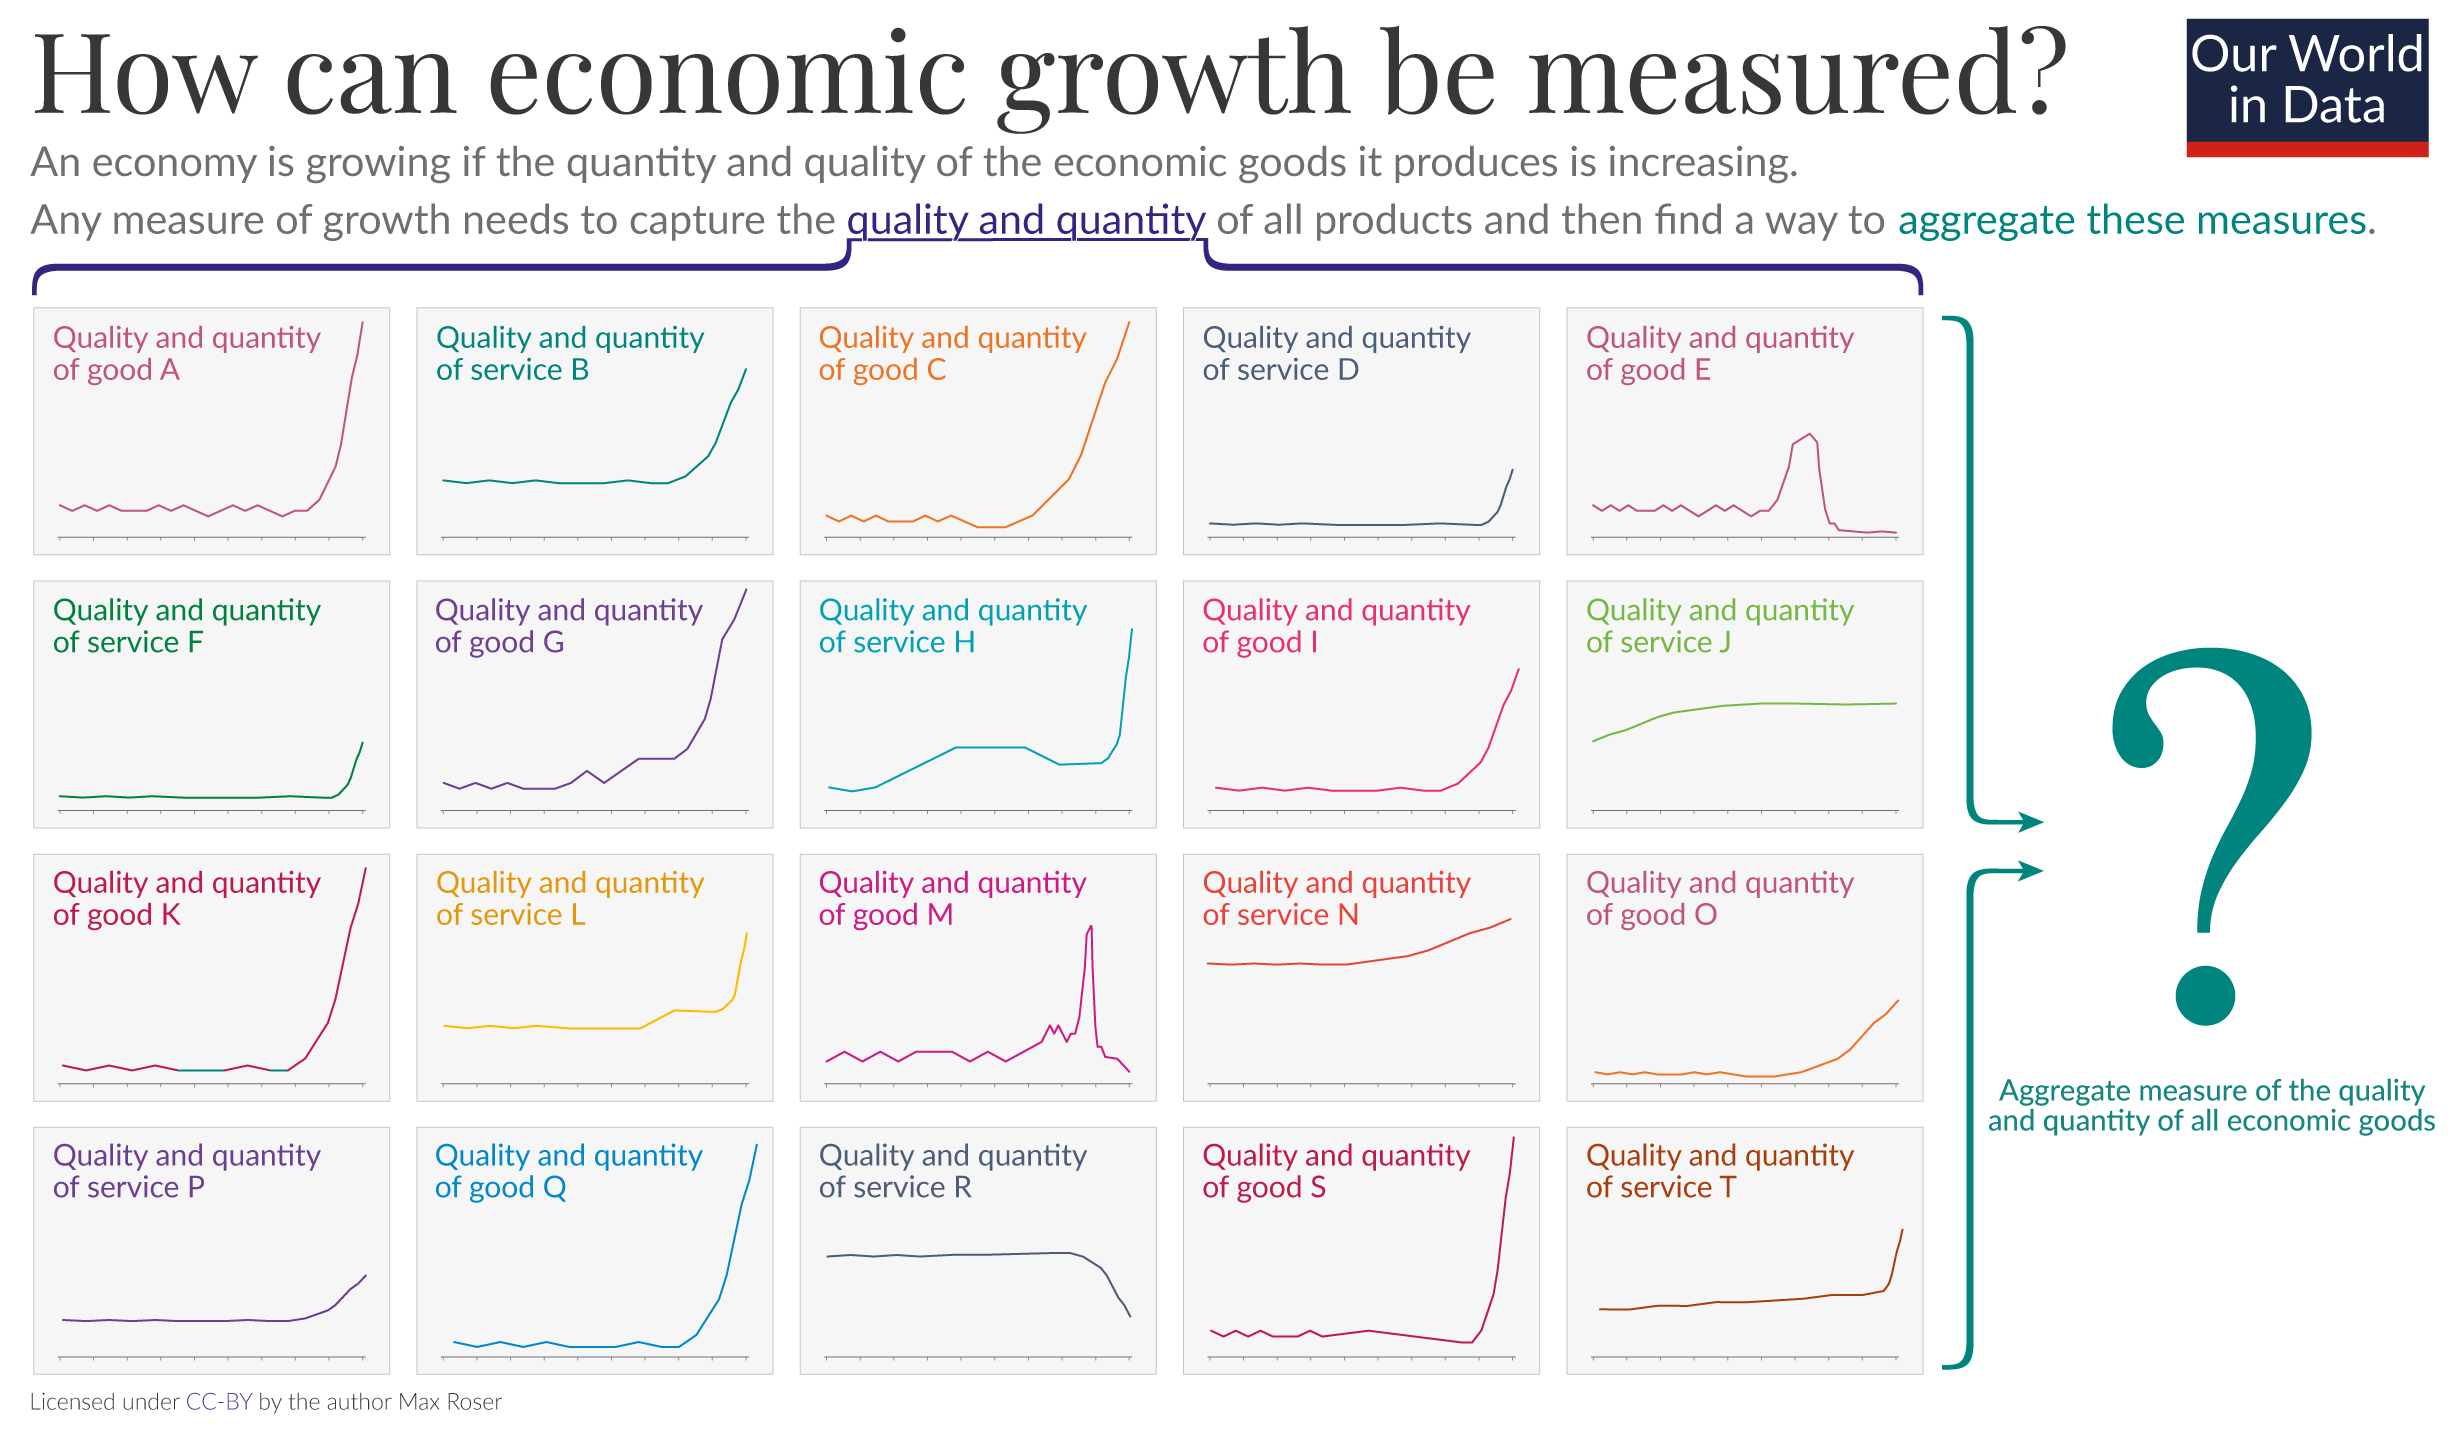 How can growth be measured